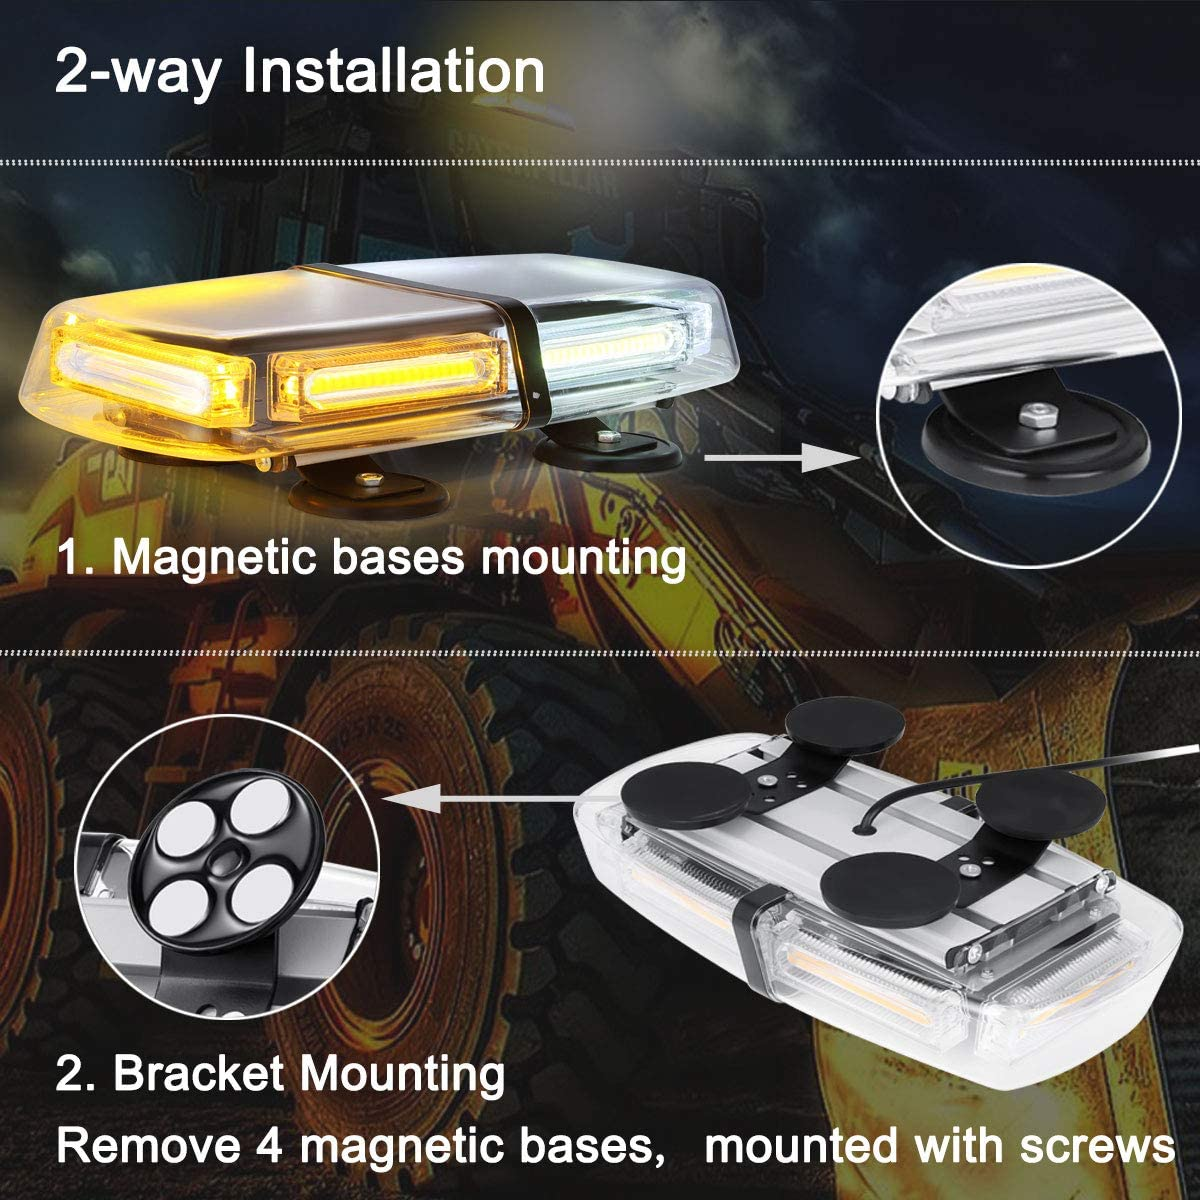 WOWTOU Emergency Flashing Hazard Warning Beacon 12V 24V Magnetic COB LED Amber White Strobe Light Bar for Trucks Snow Plow Tractors Construction Vehicles SUV Roof Top Caution Safety Lighting